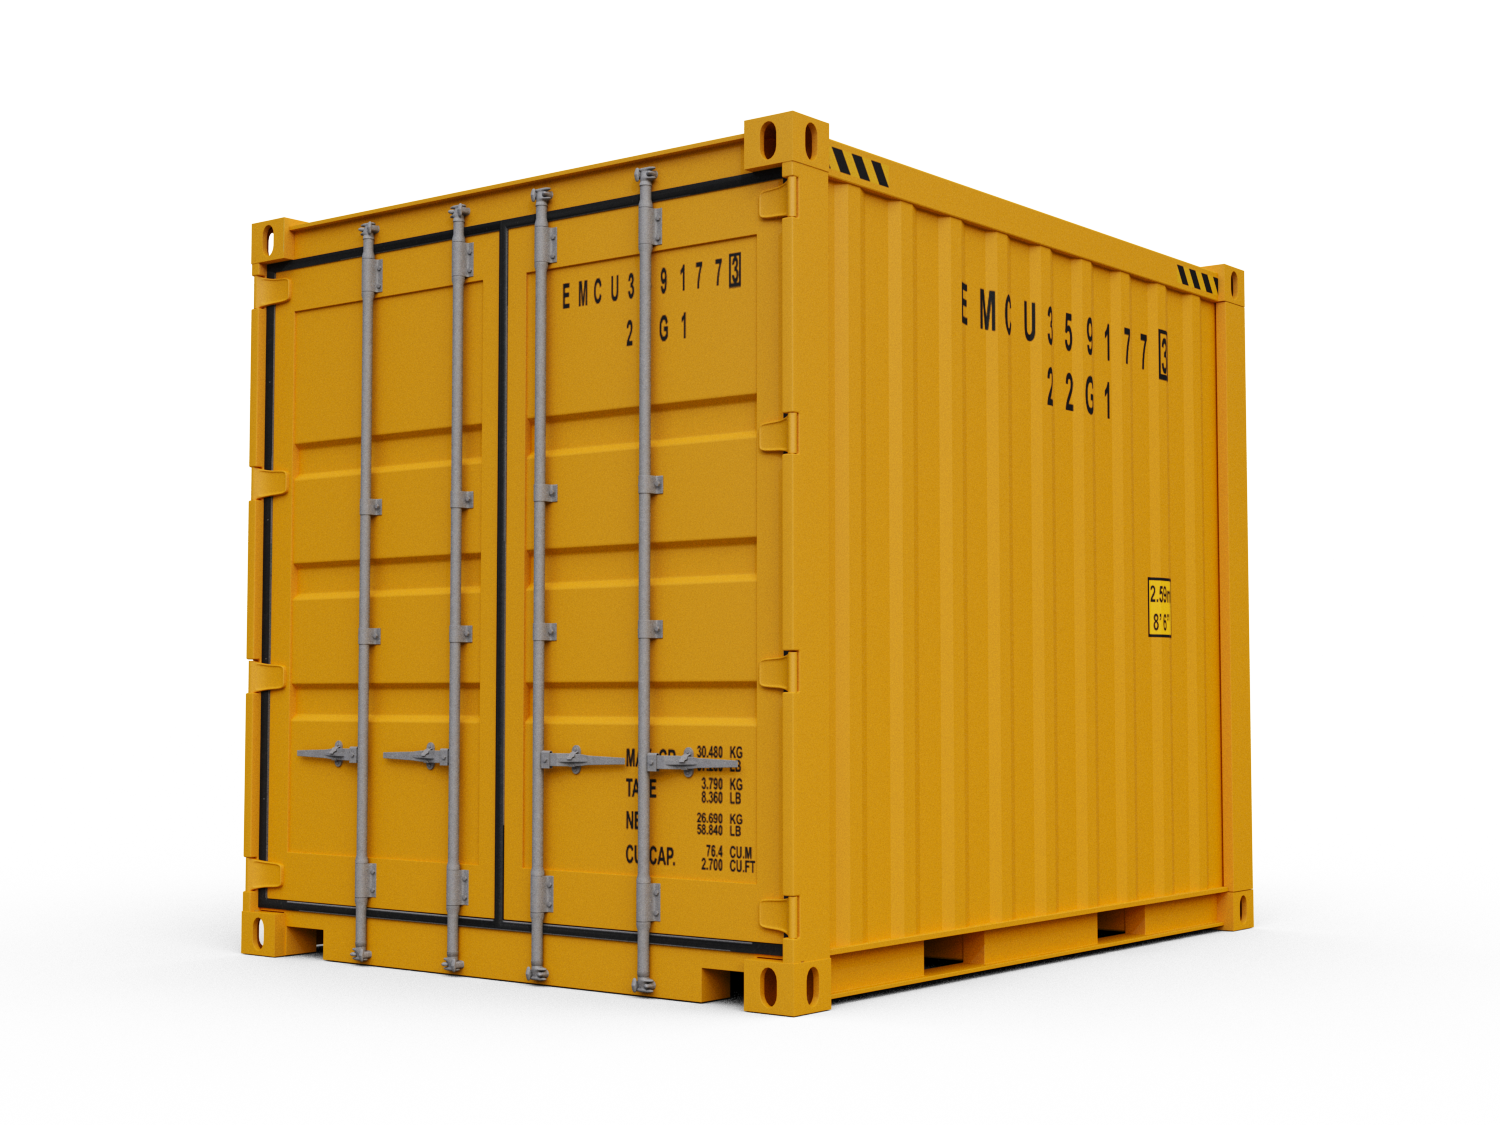 Shipping crate png. New one trip ft